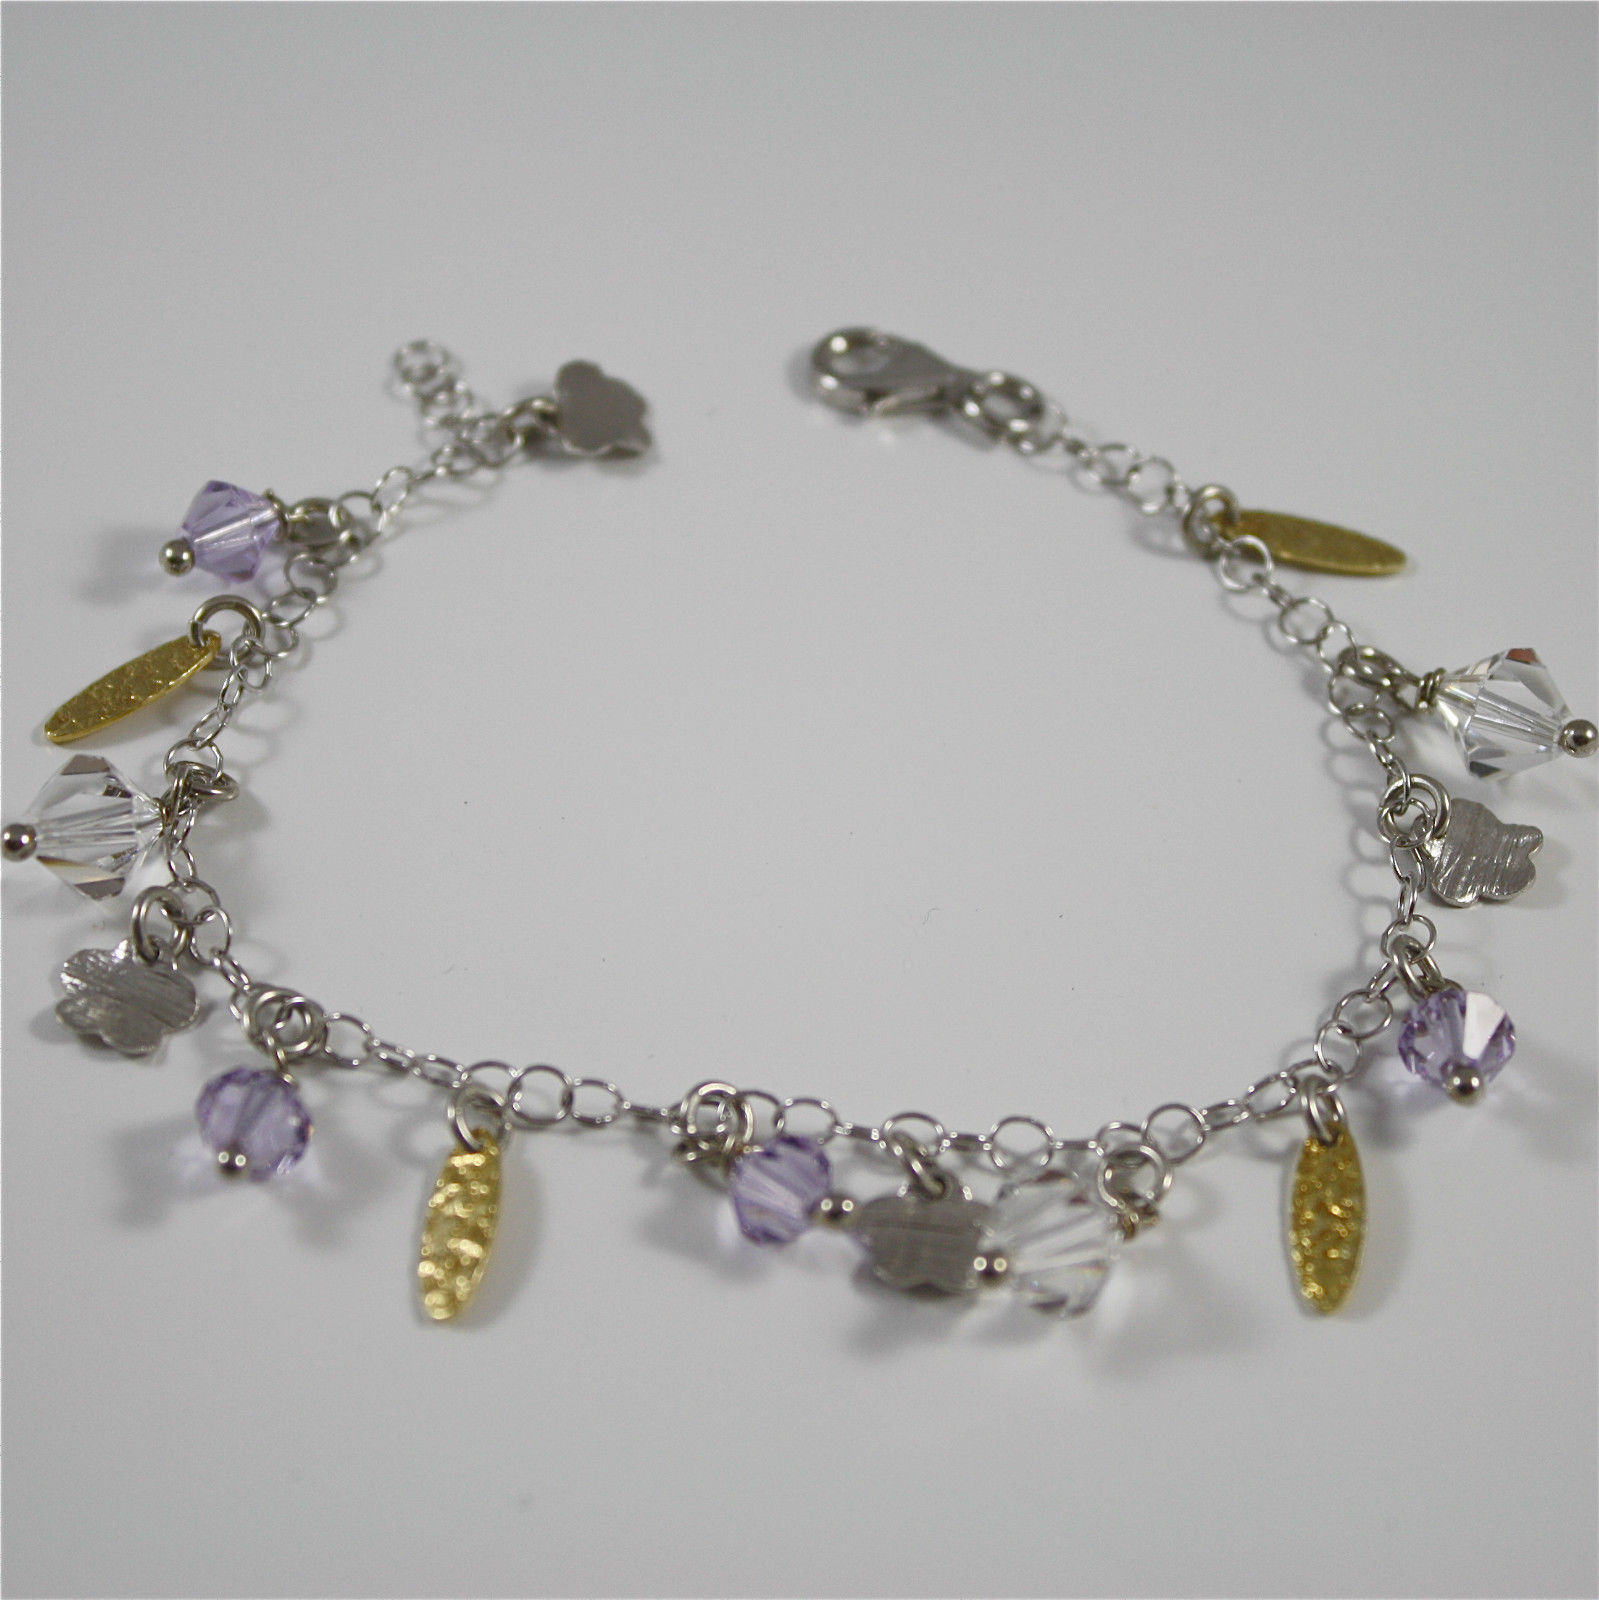 Bracelet in Sterling Silver 925 Rhodium and Yellow Gold Plated with Crystals ...